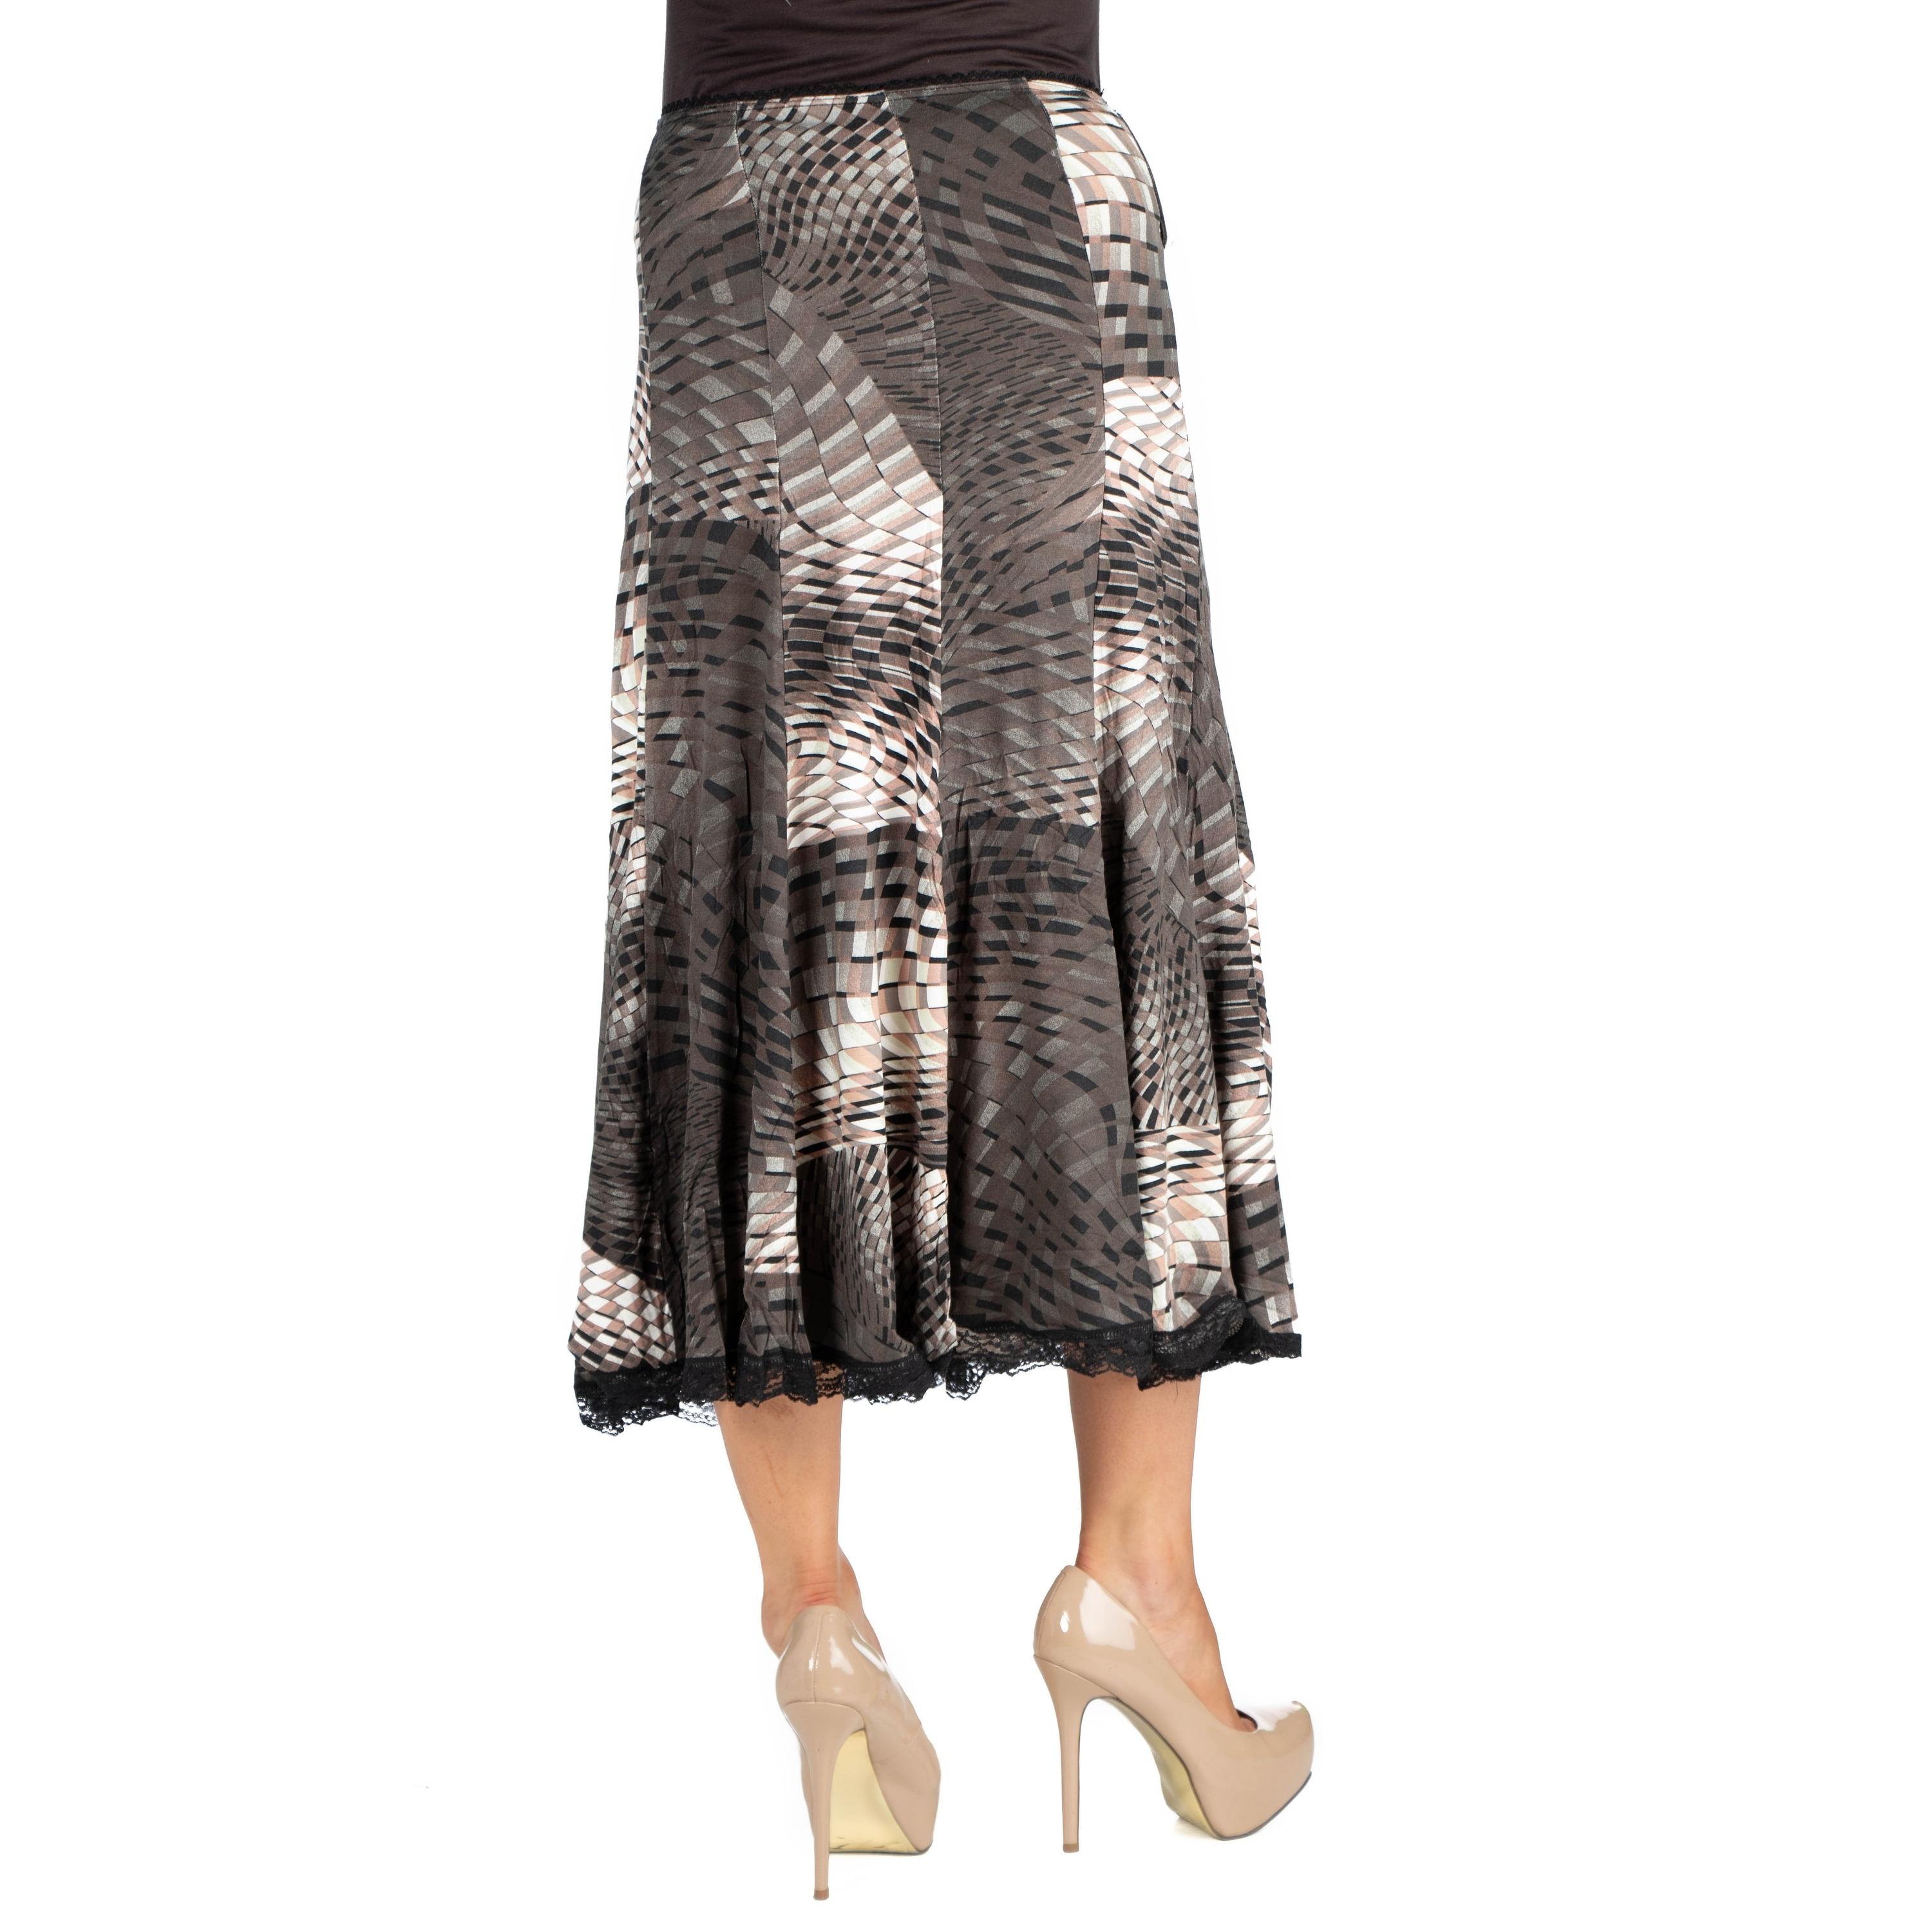 12248423cb Shop 24seven Comfort Apparel Midi Maternity Skirt - Free Shipping On Orders  Over $45 - Overstock - 23621304